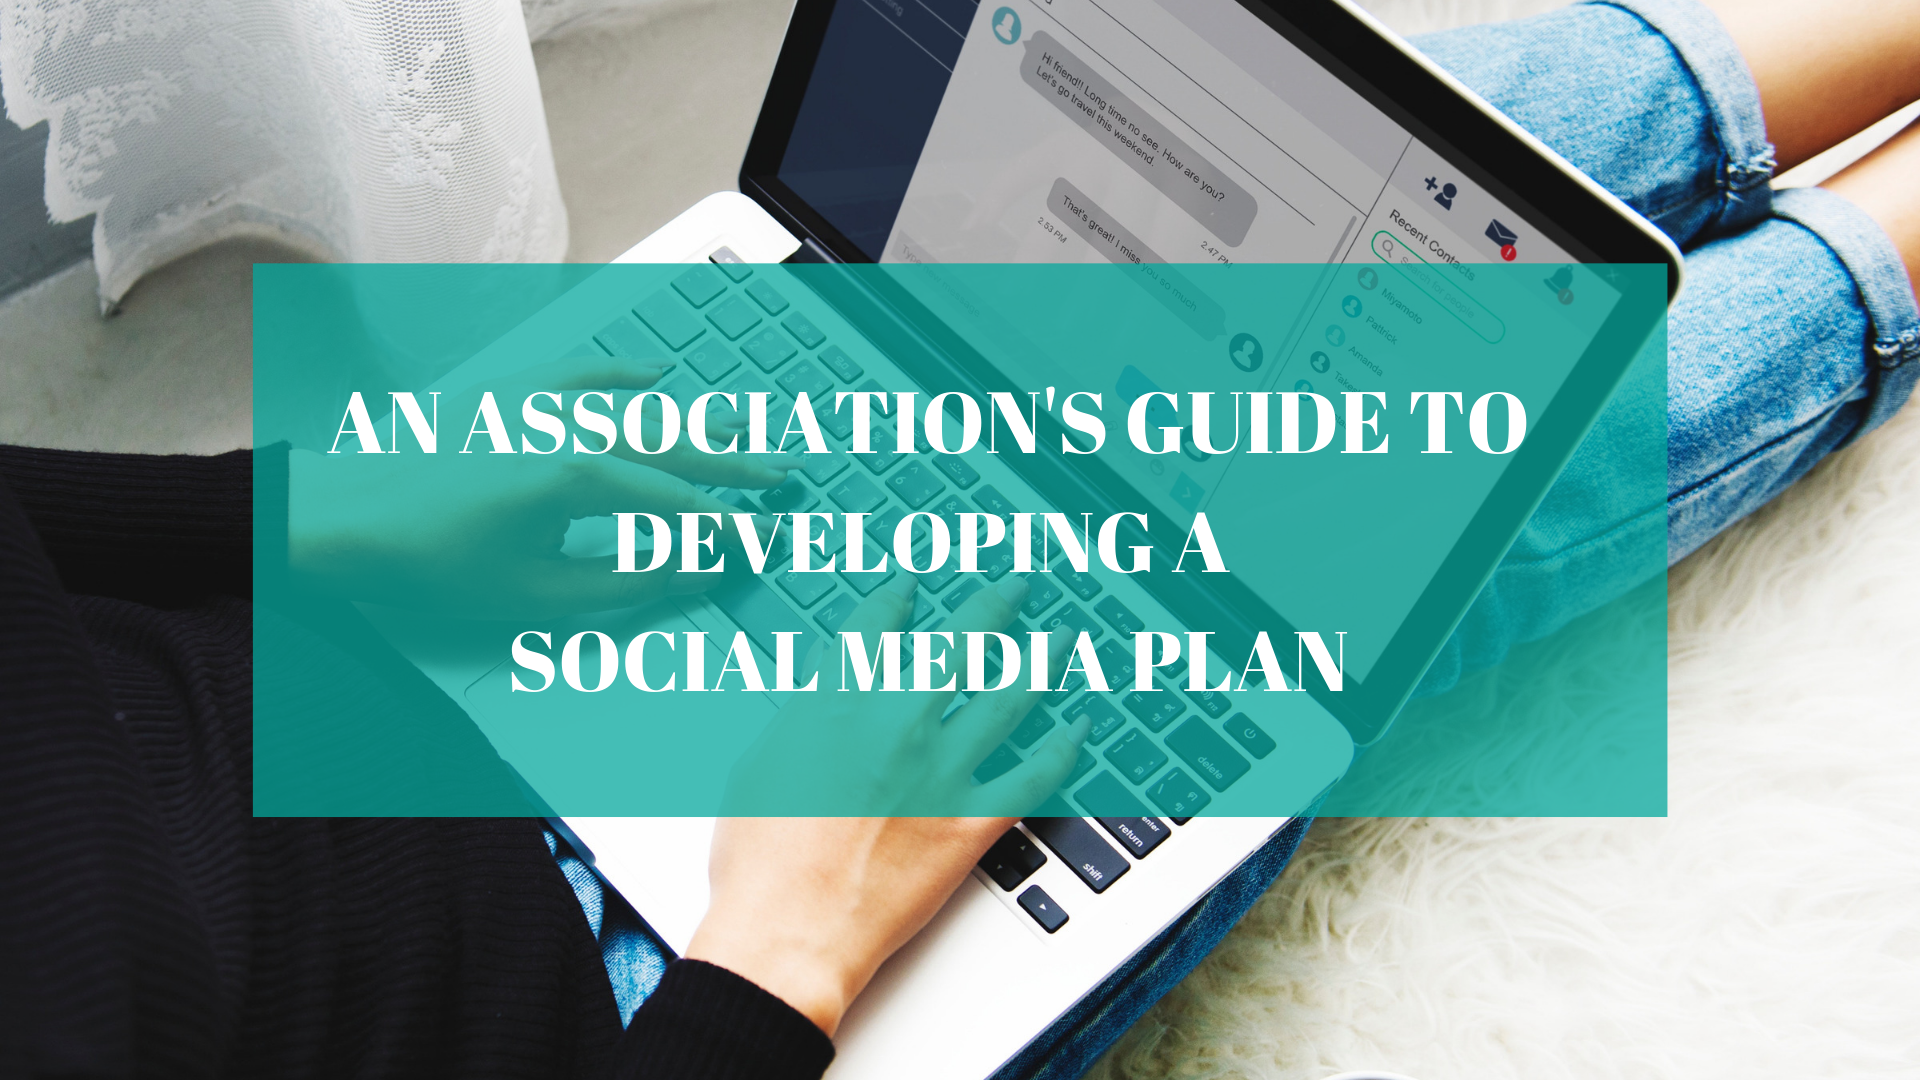 An Association's Guide to Developing a Social Media Plan